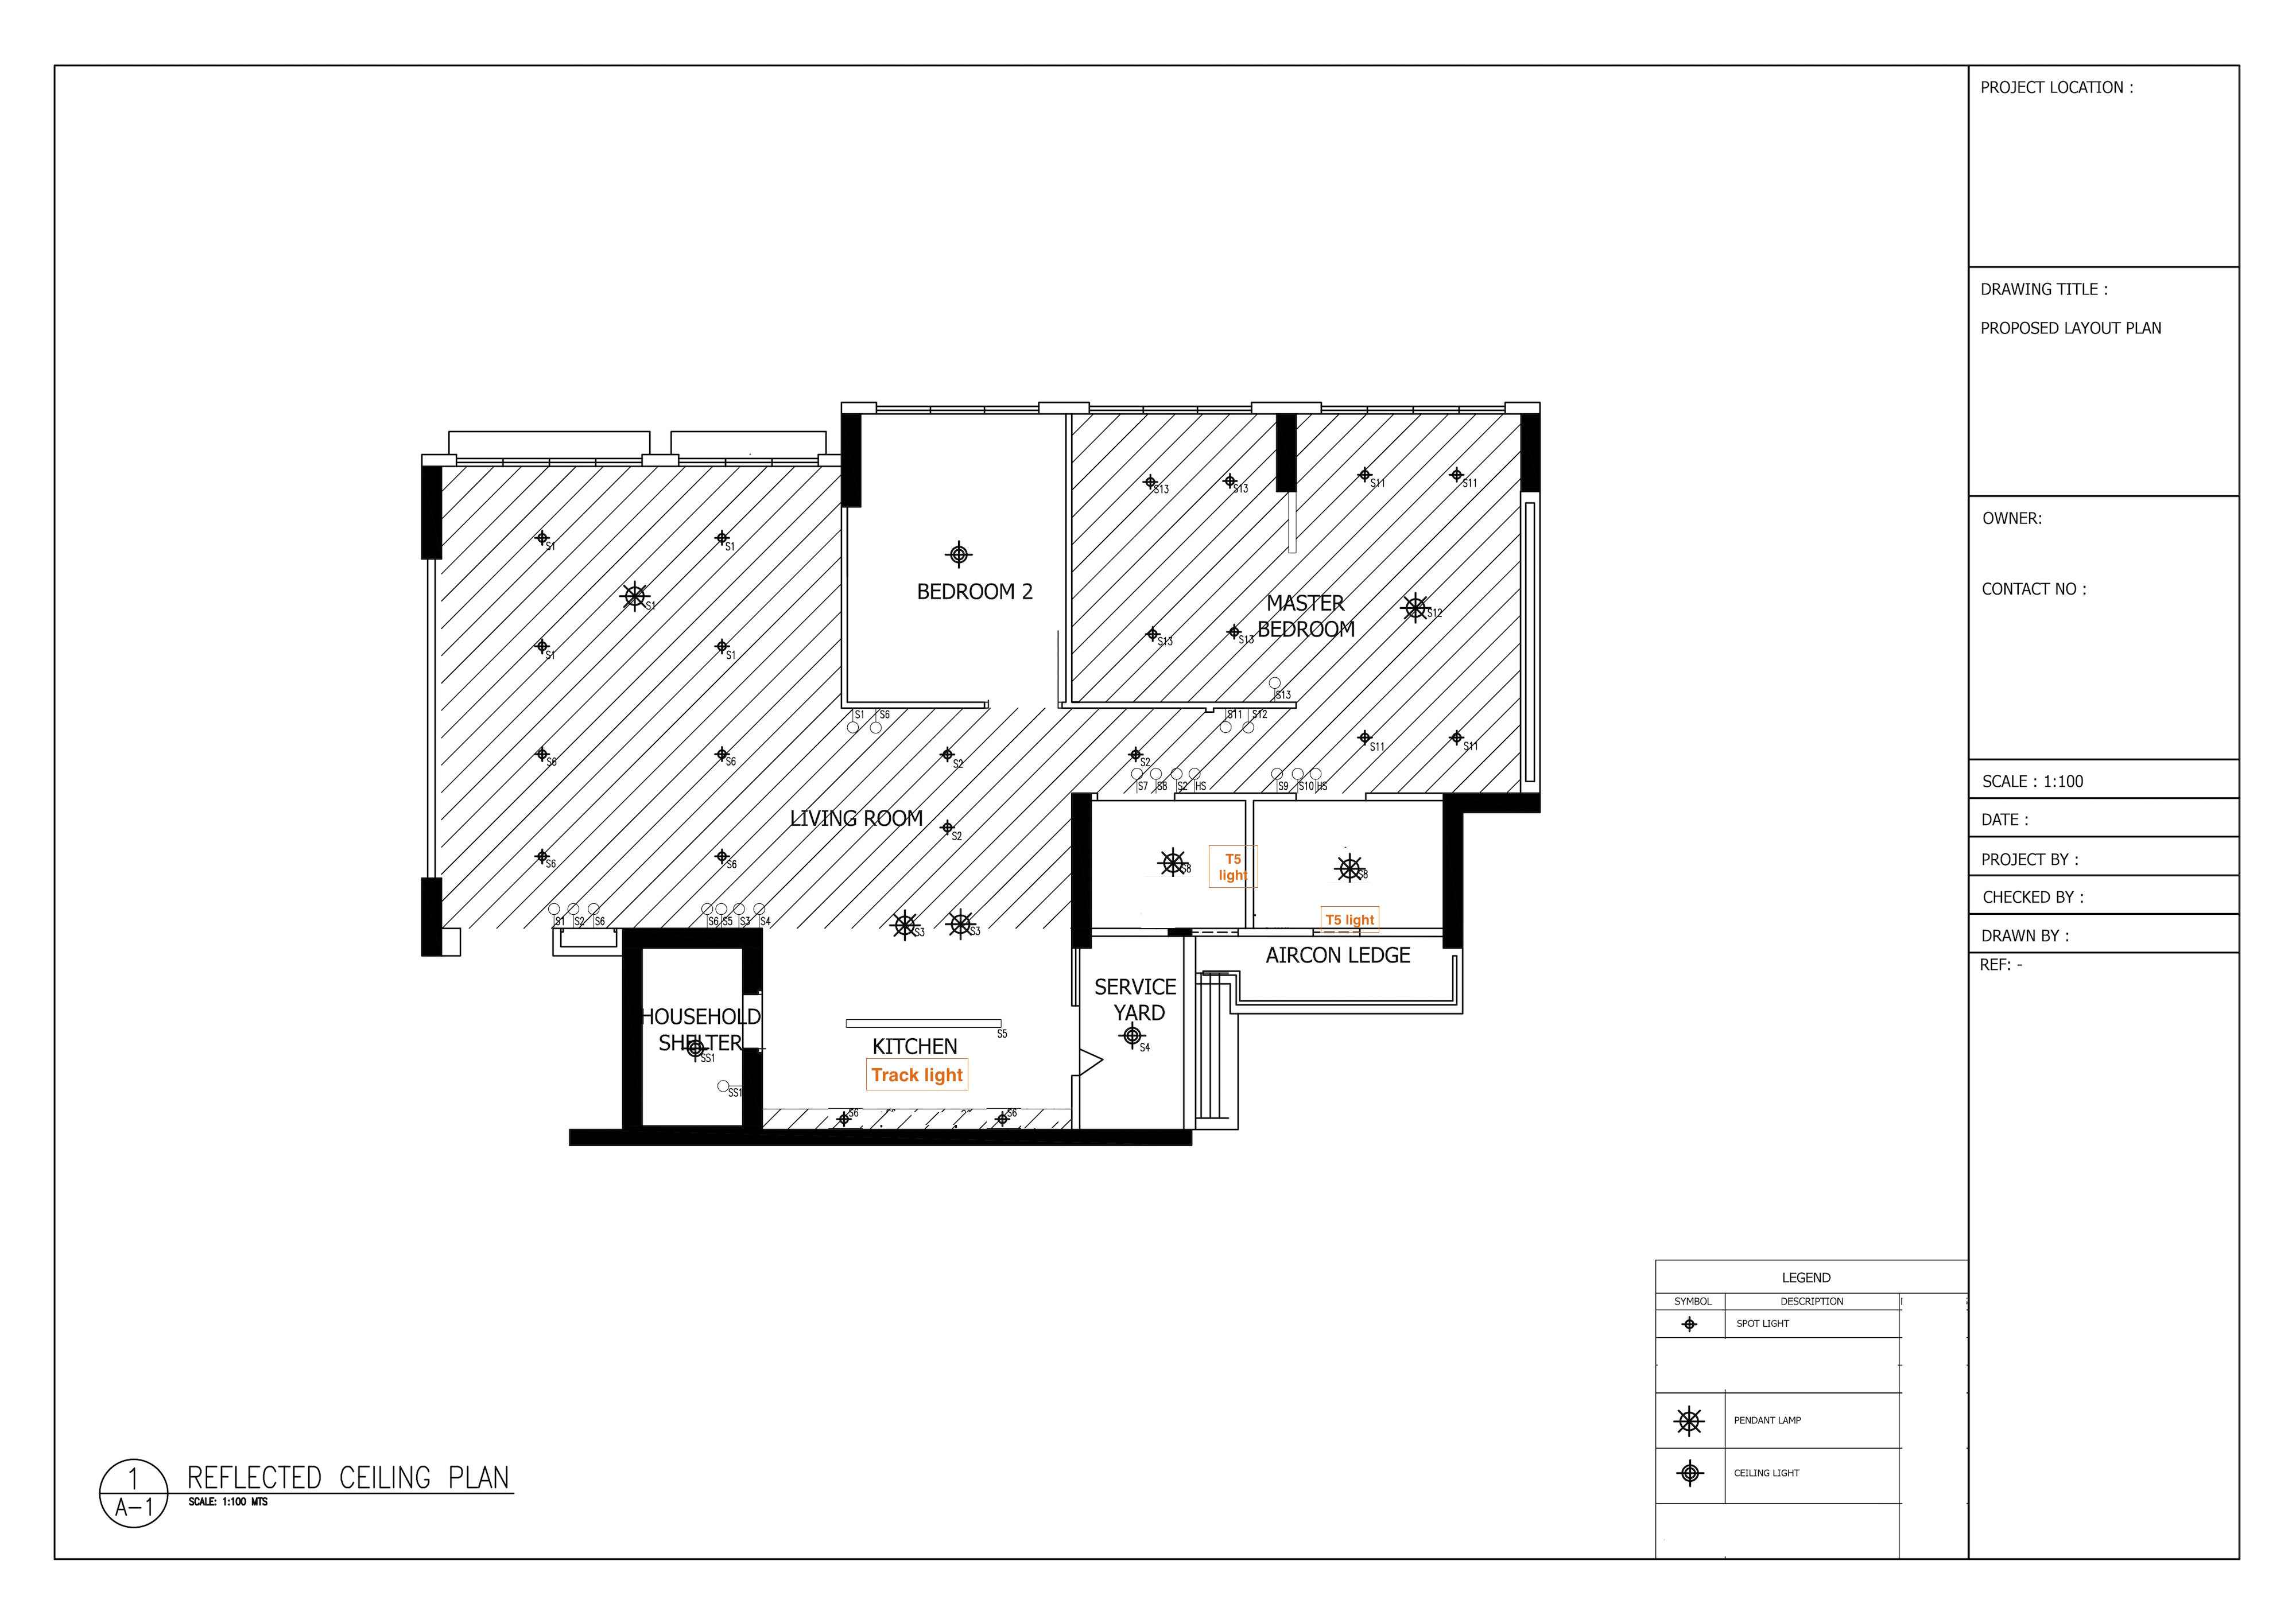 Cool lighting plans bedrooms Ideas Lighting Plan And Lighting Details Eat And Travel With Us How To Plan Lighting And Electrical Works For Your House